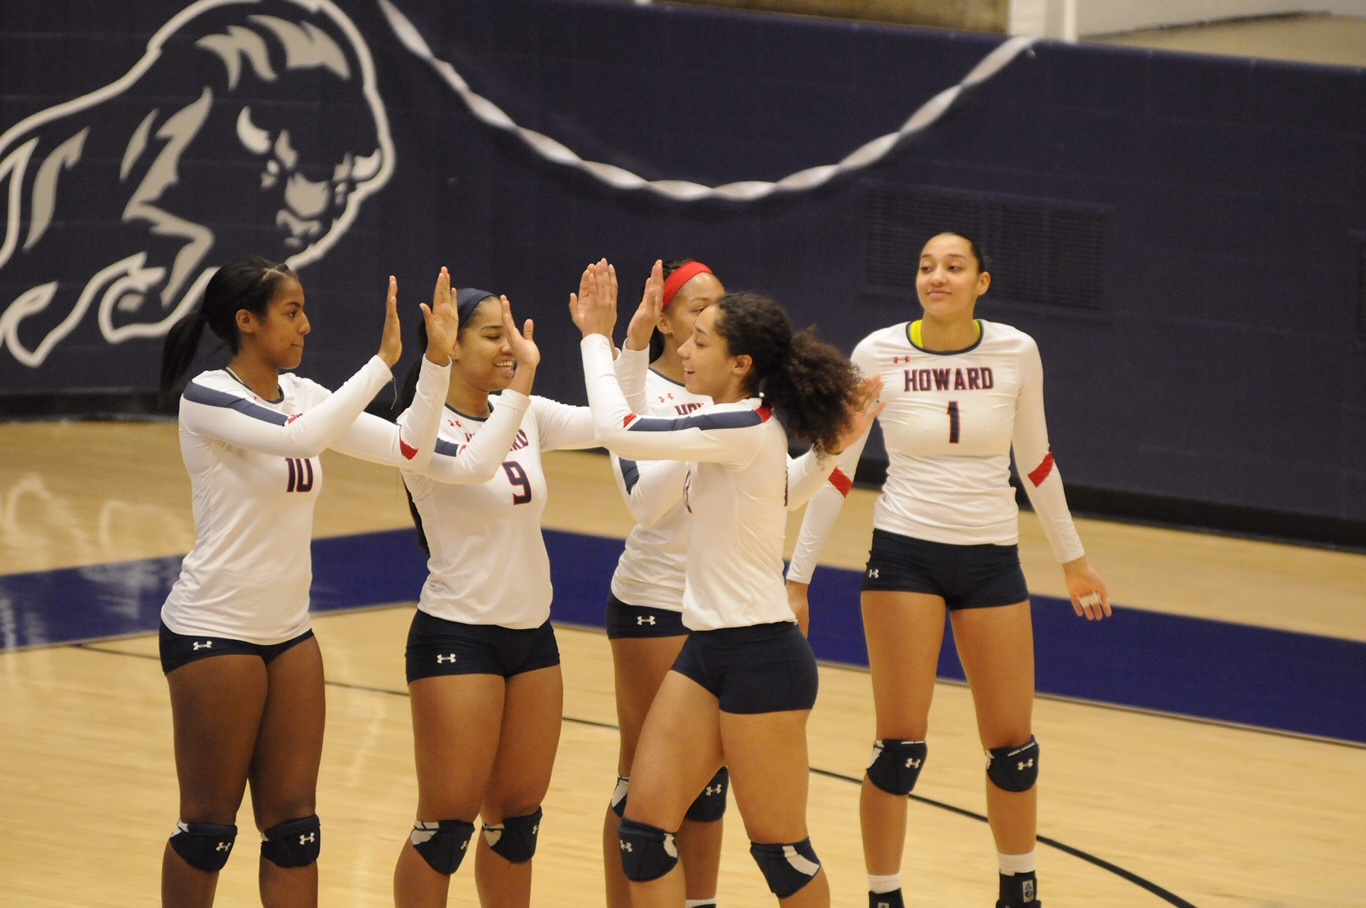 howard university volleyball to host no. 1 stanford and no. 6 penn